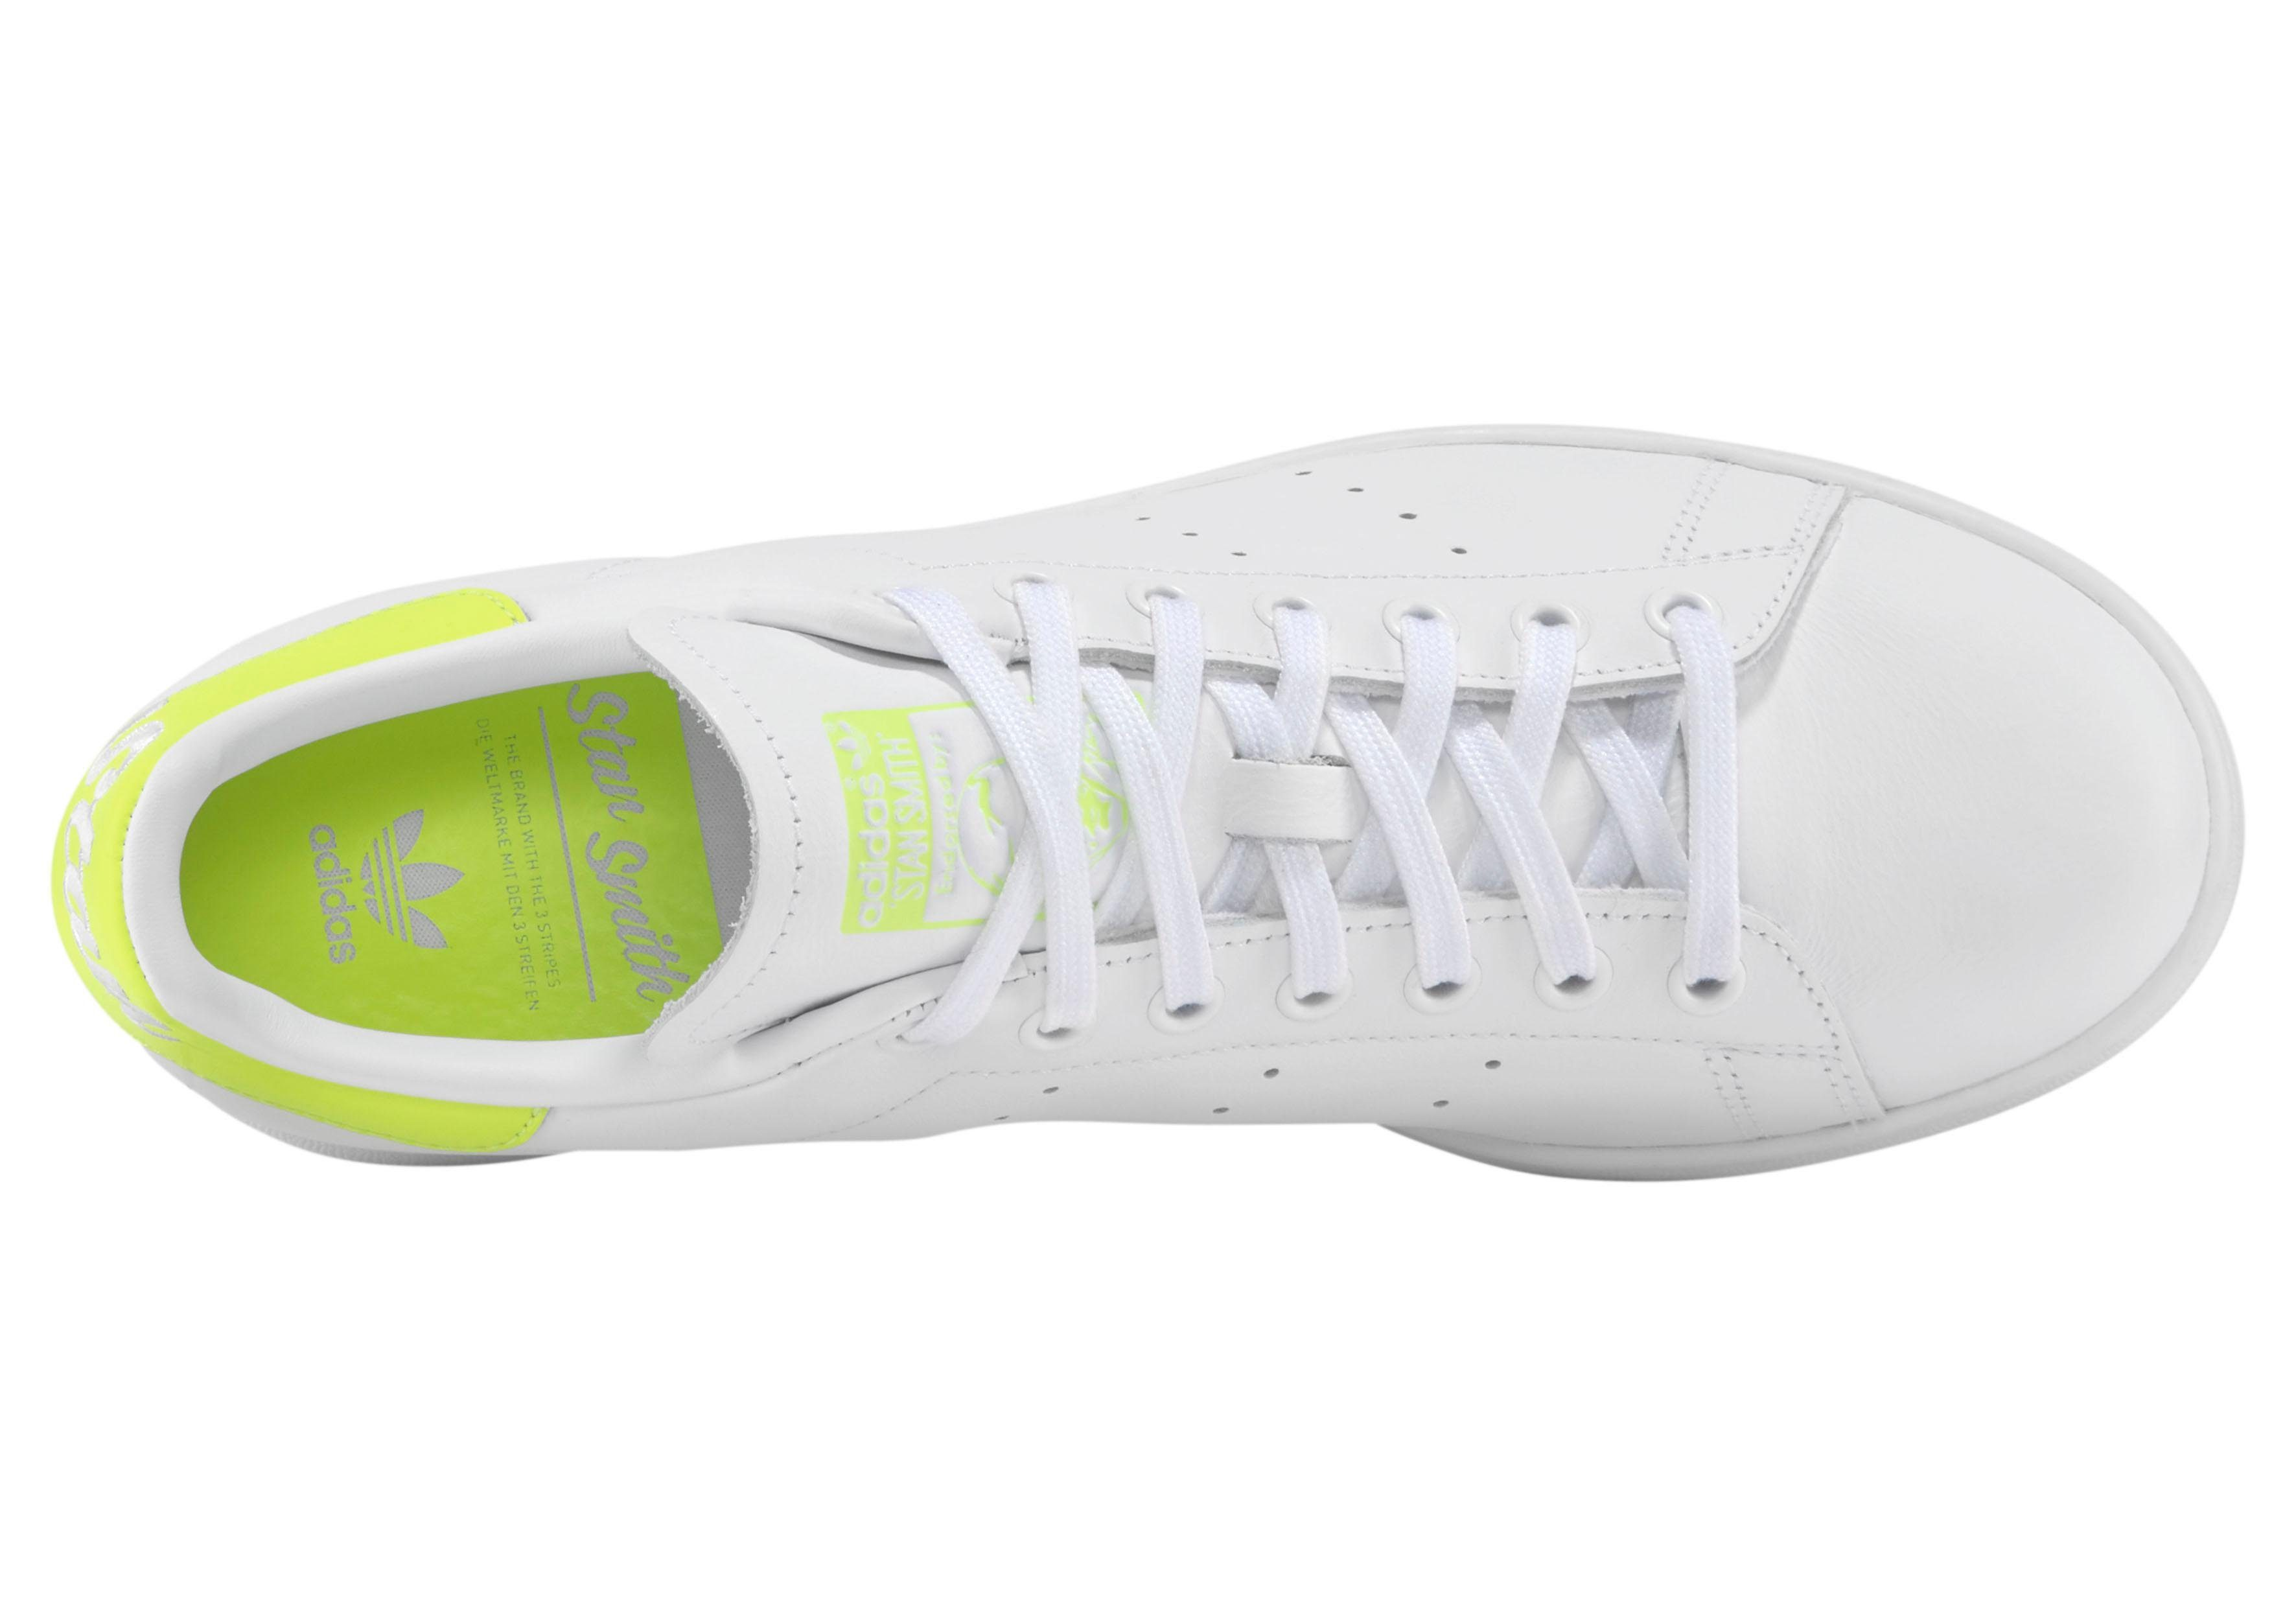 Details about adidas Mens Hoops 2.0 Trainers Sports Shoes Low Lace Up Casual Everyday